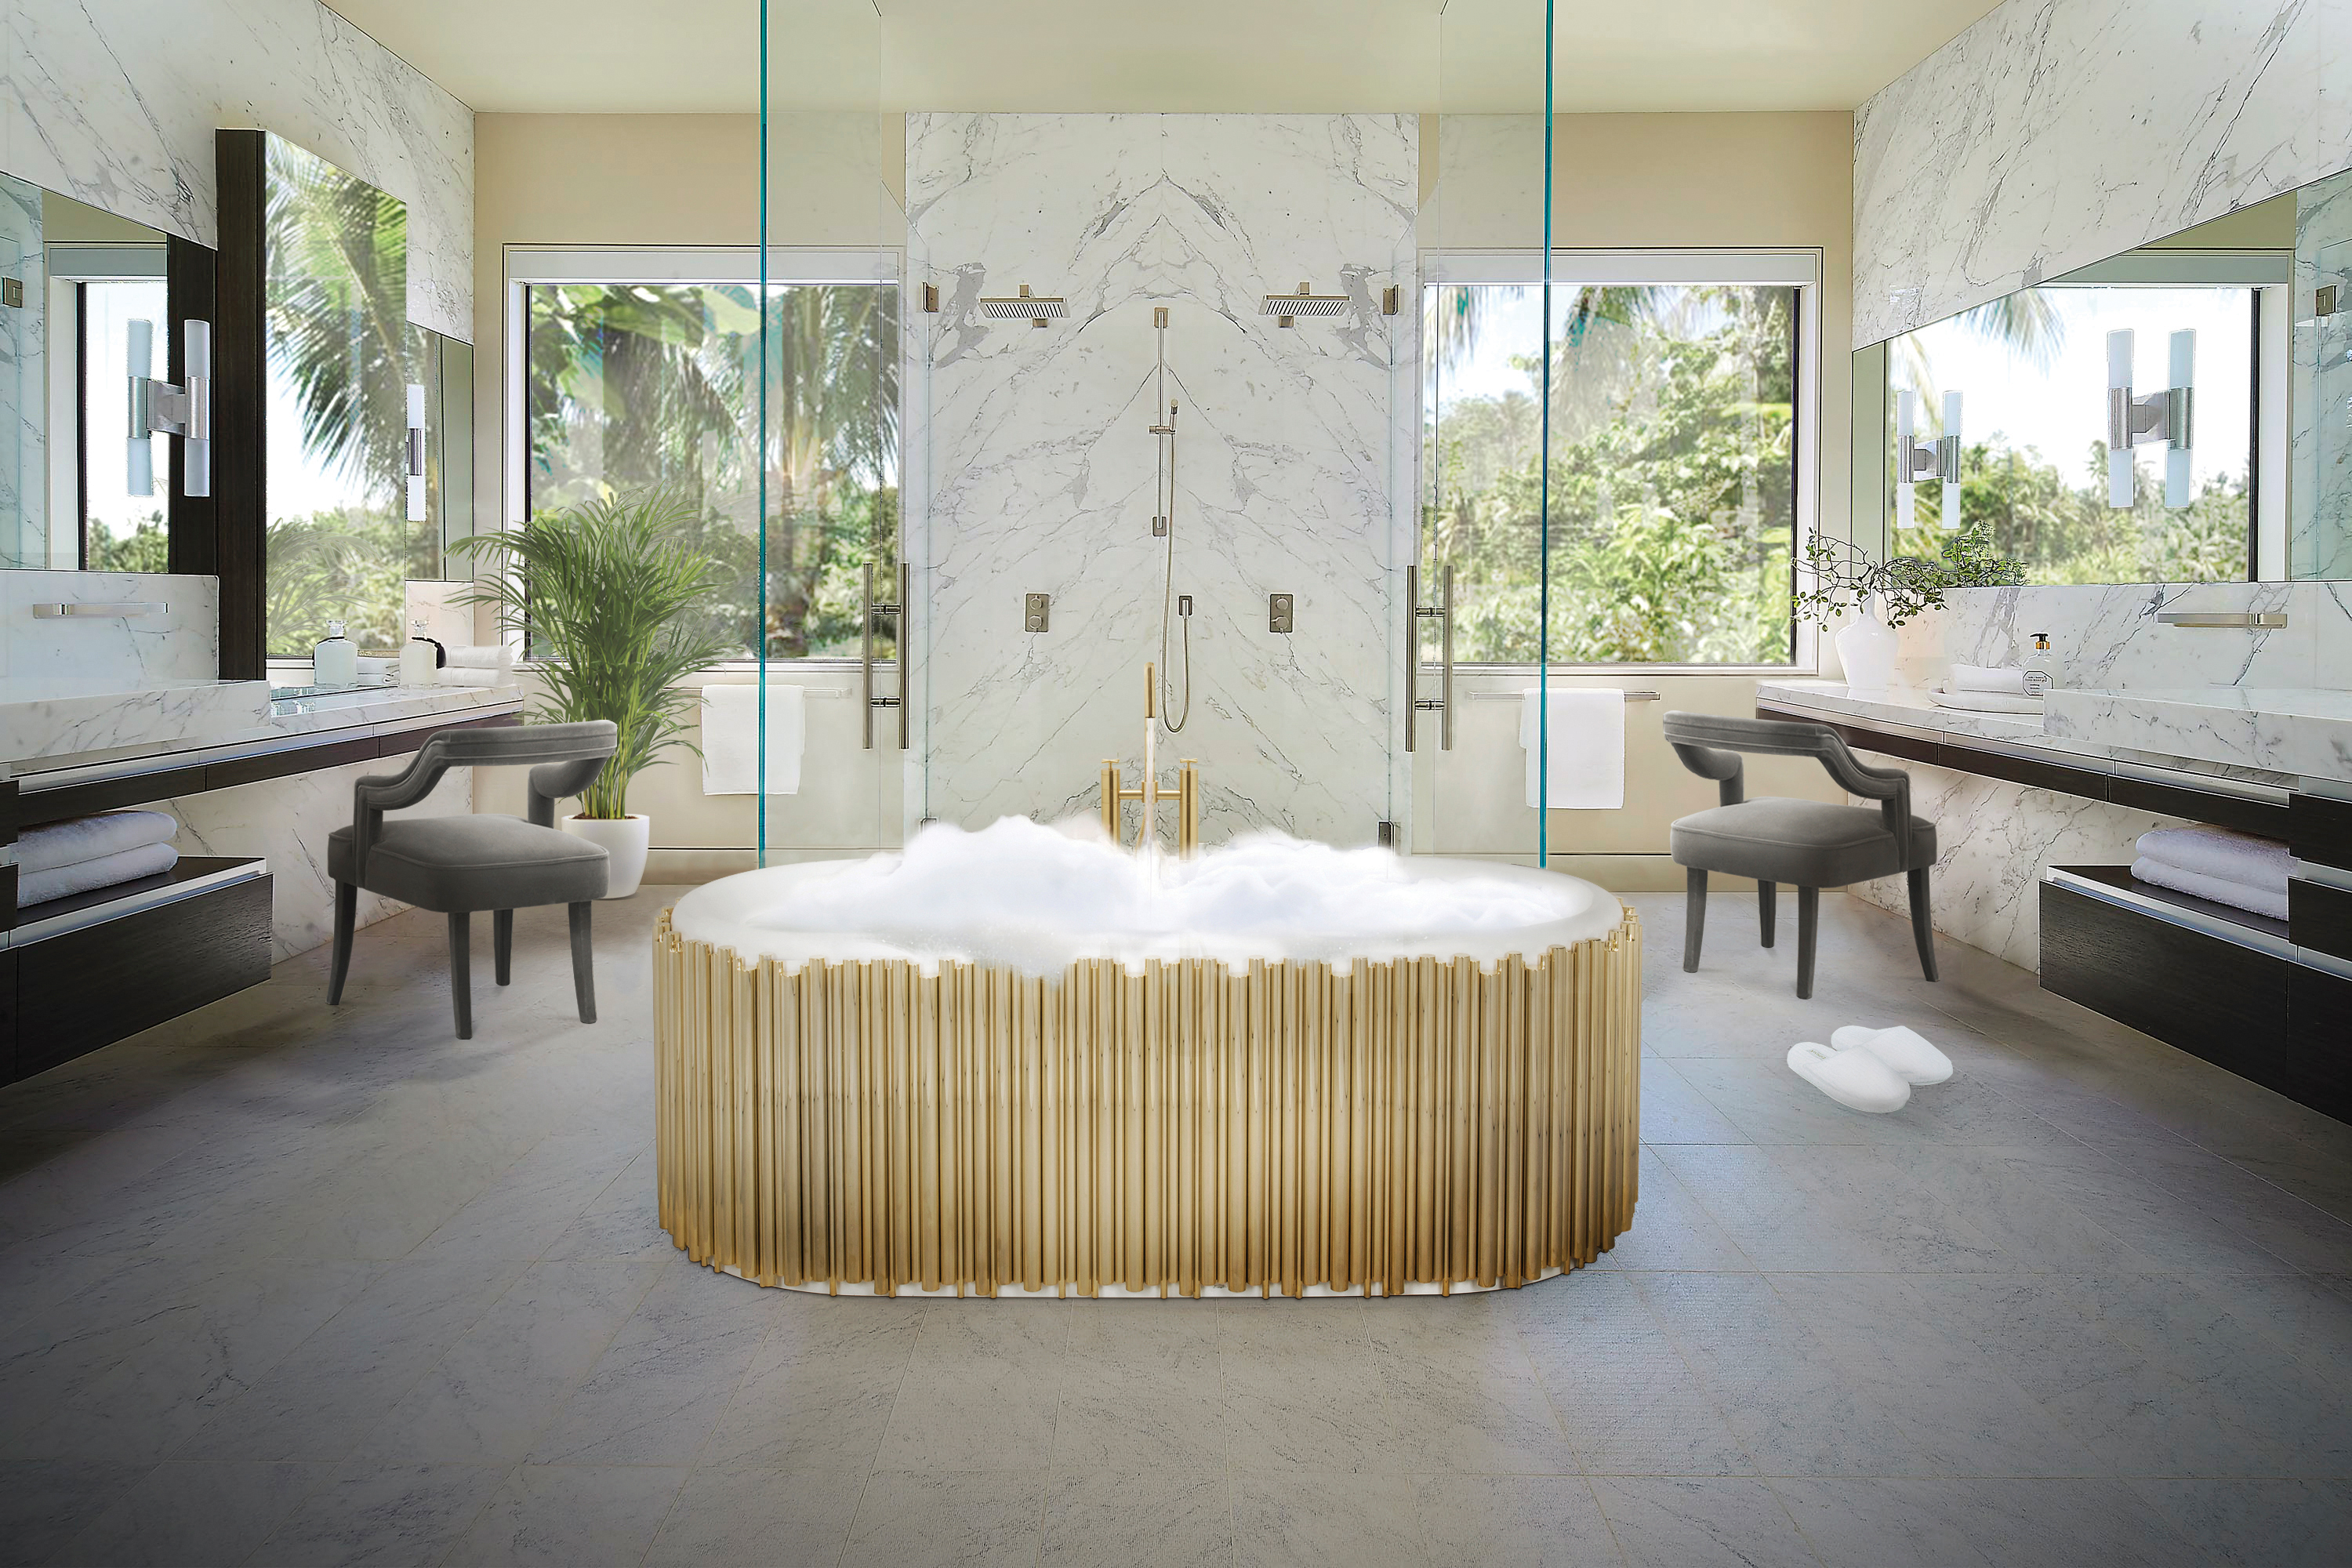 transform your bathroom Elegant and Functional Tips to Transform Your Bathroom into a Relaxing Place Symphony Bathtub